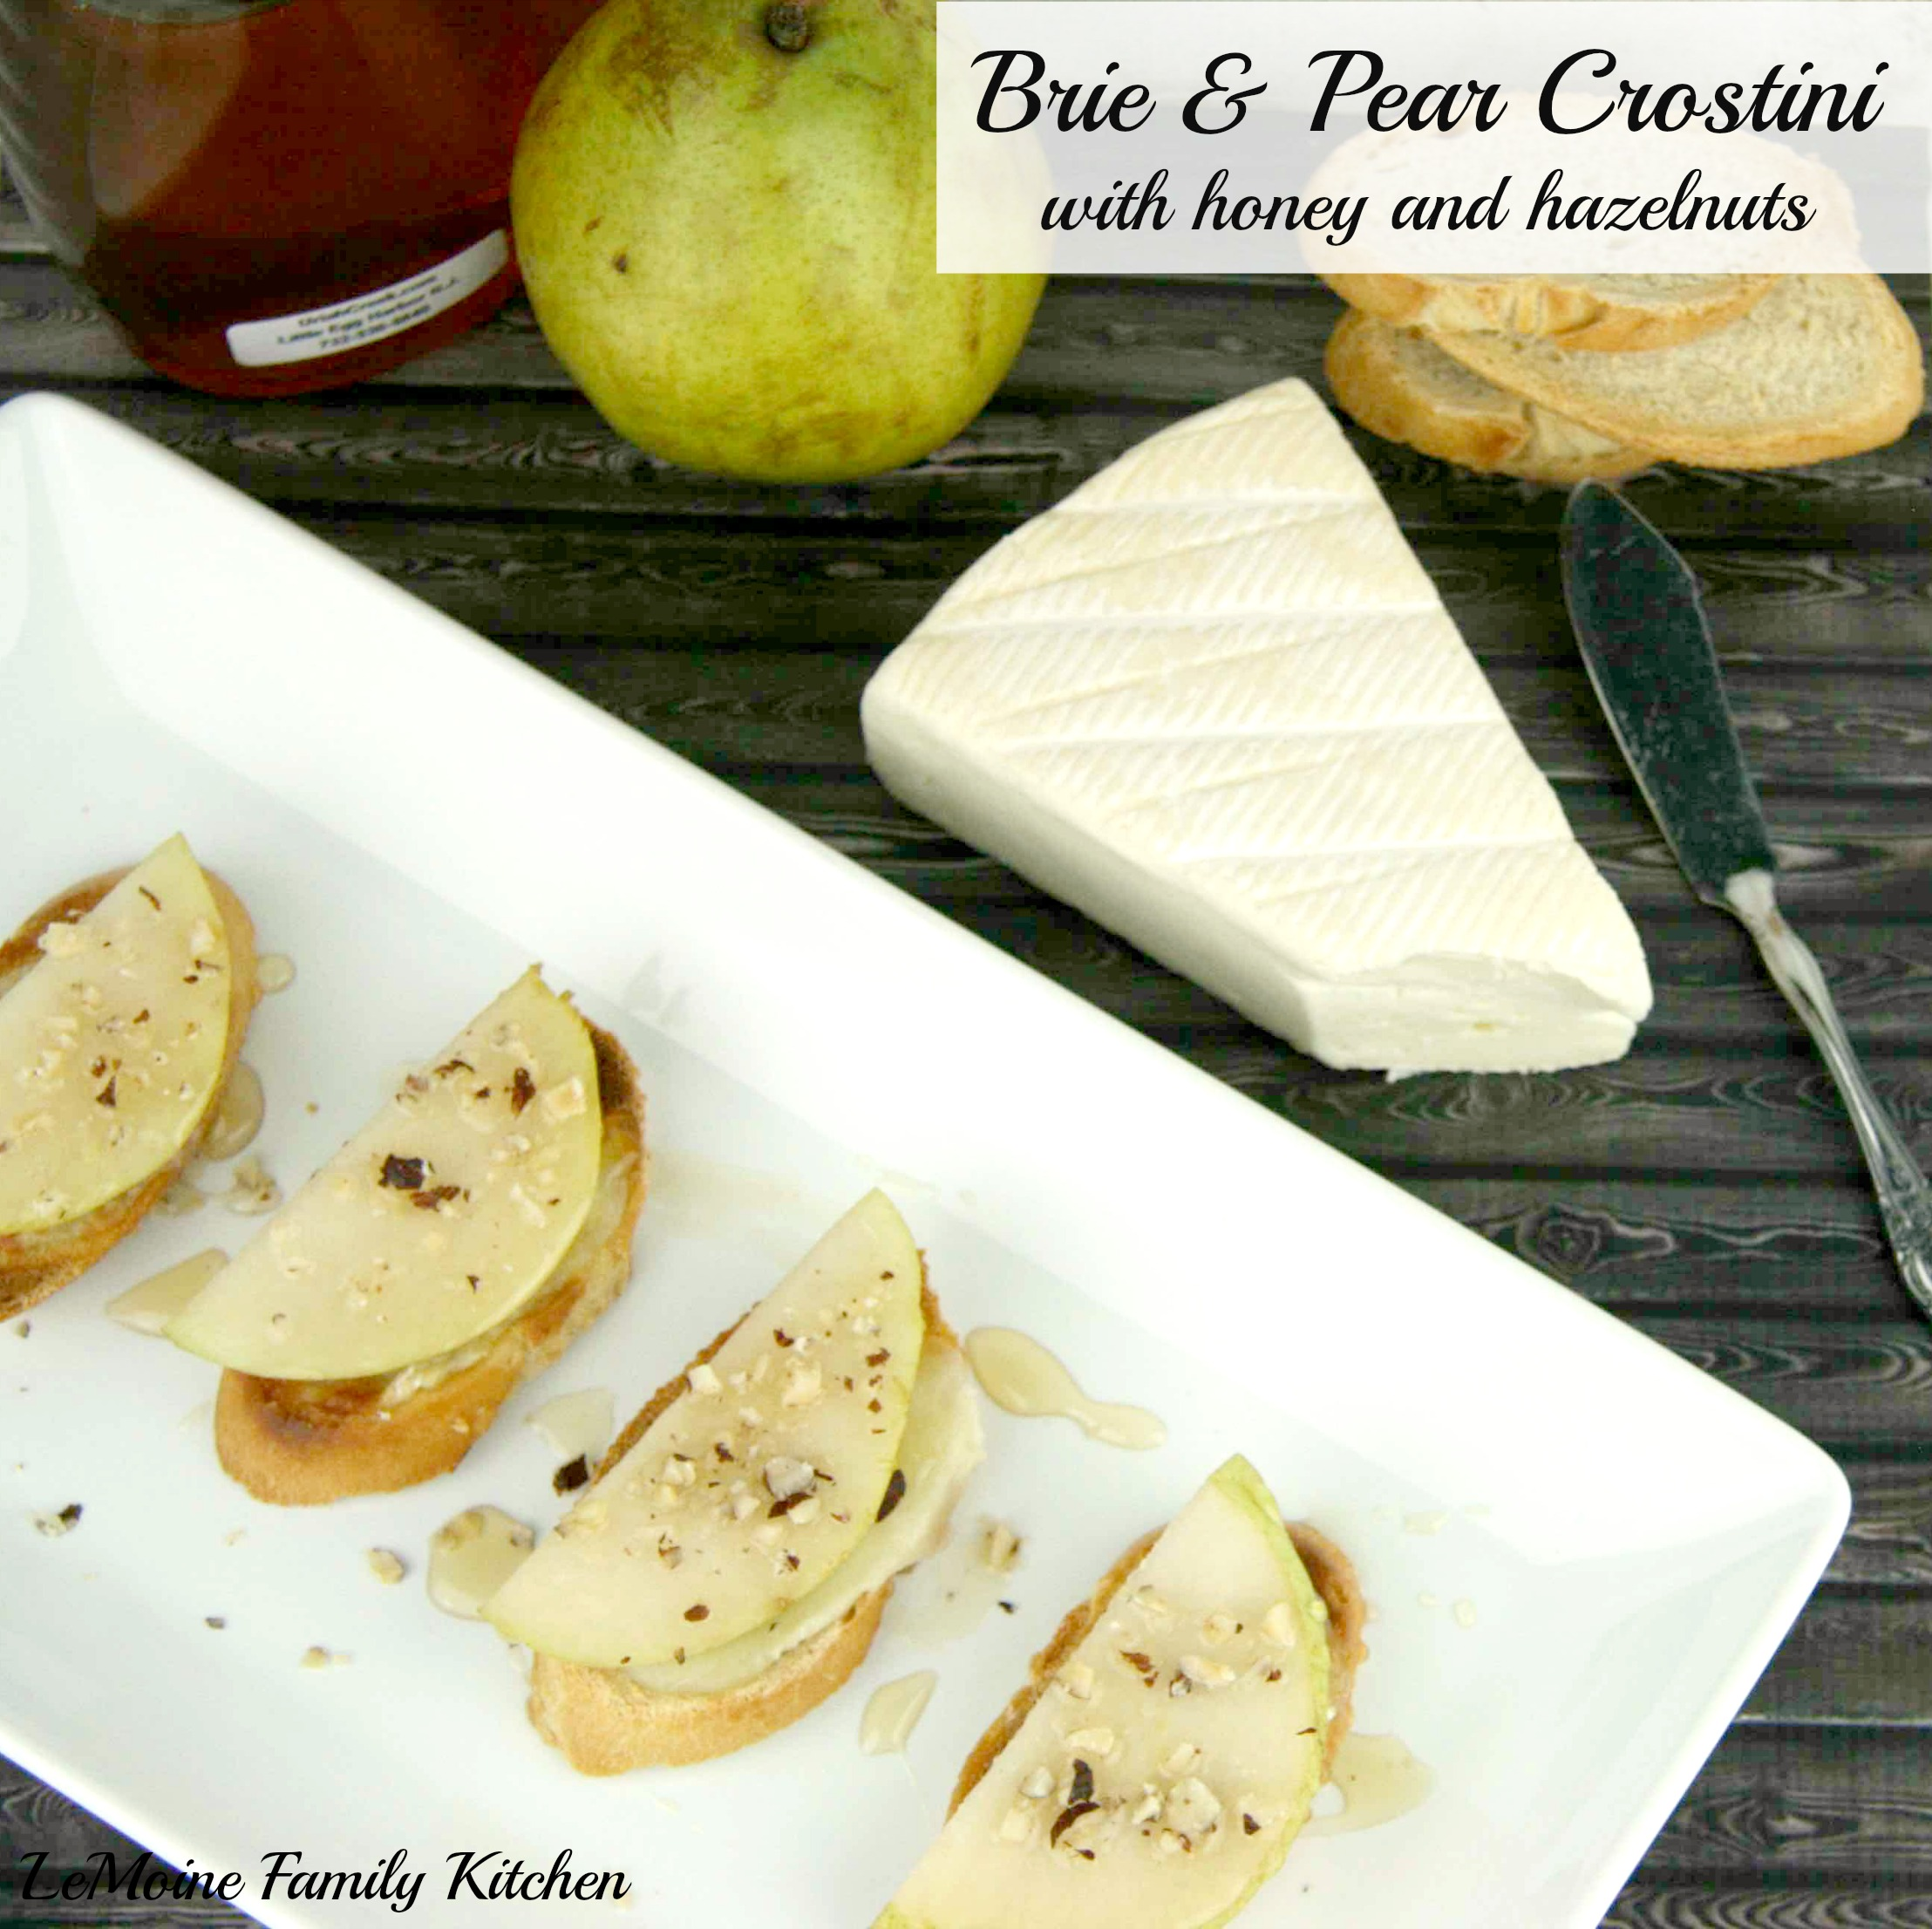 Brie & Pear Crostini with Honey and Hazelnuts